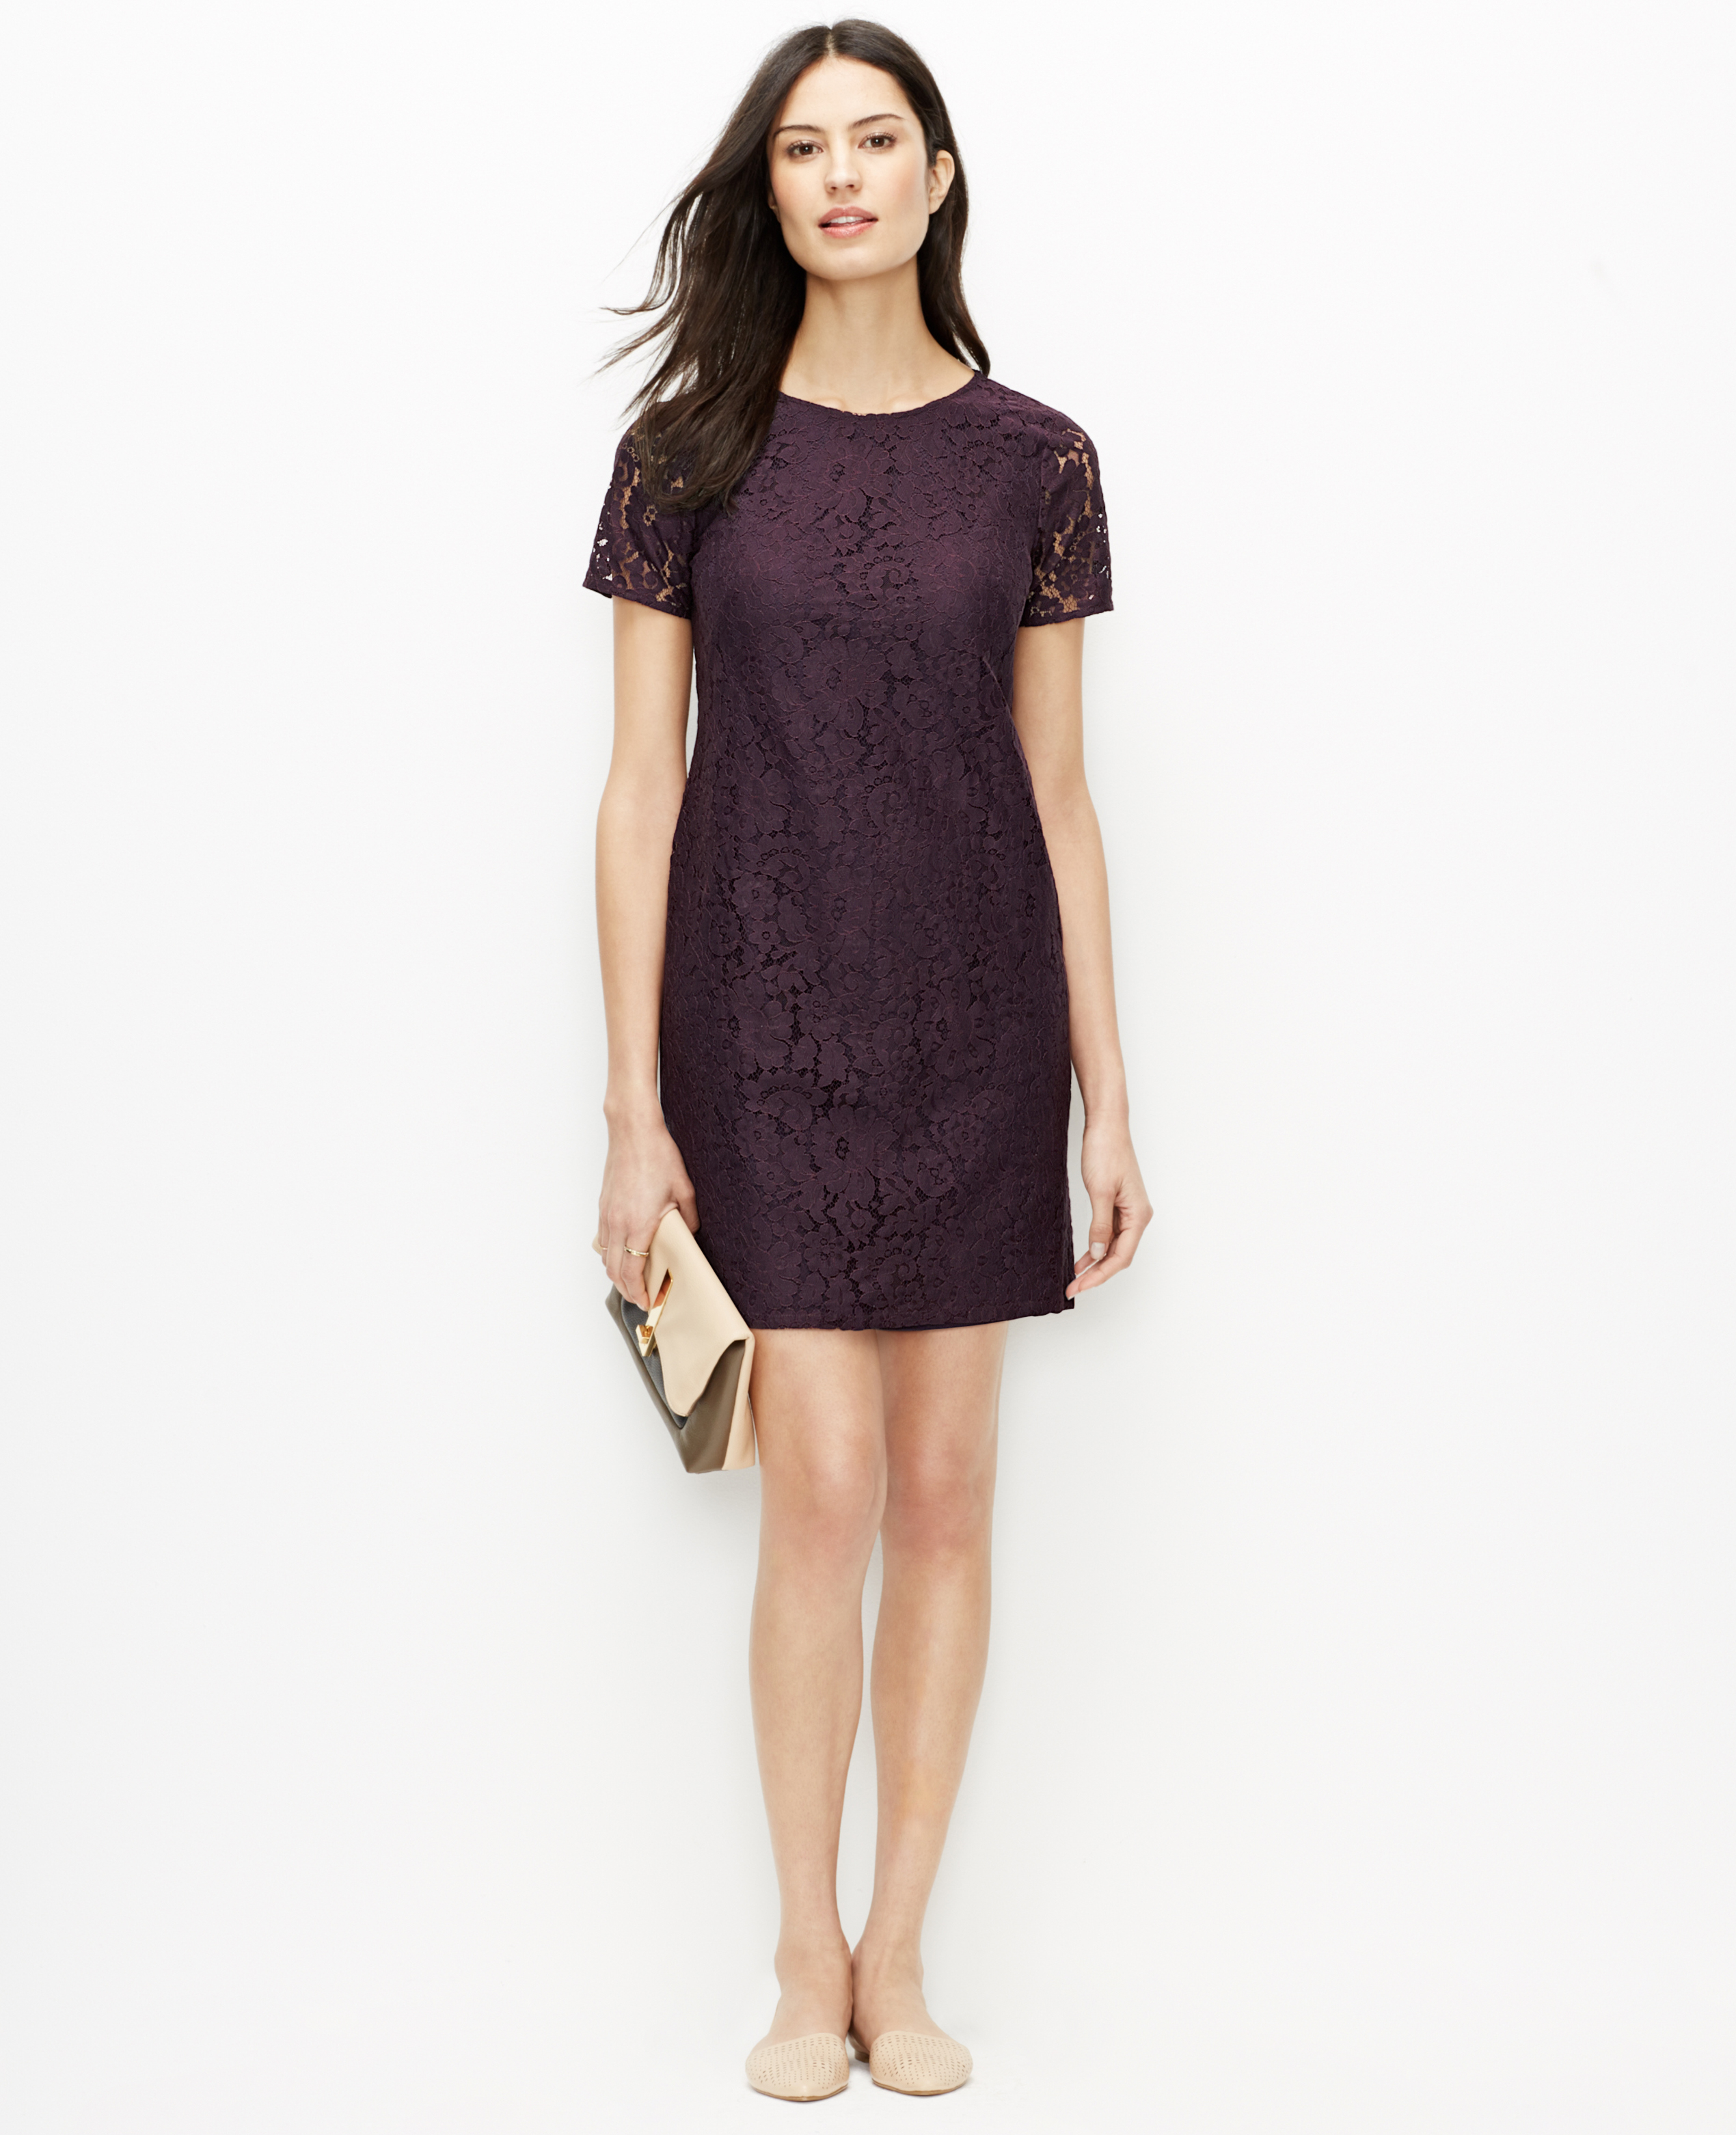 Ann Taylor Cocktail Dresses | Dress images